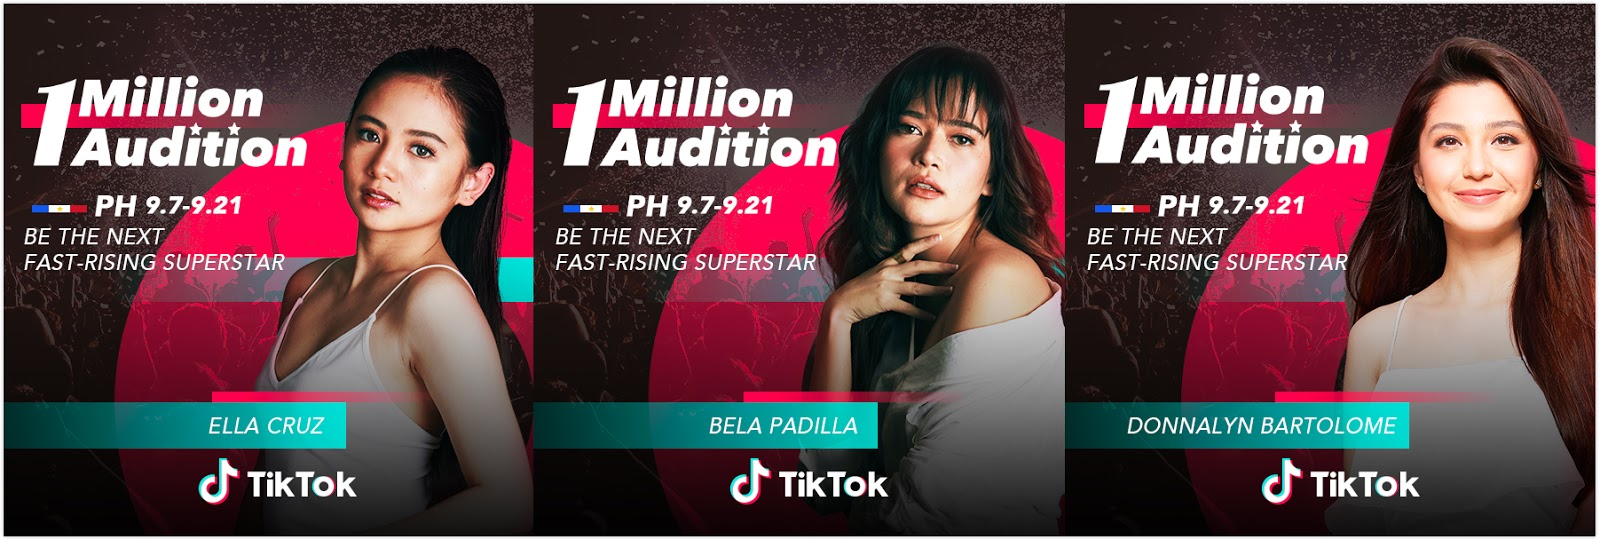 TikTok's 1 Million Audition presents Bela Padilla, Ella Cruz